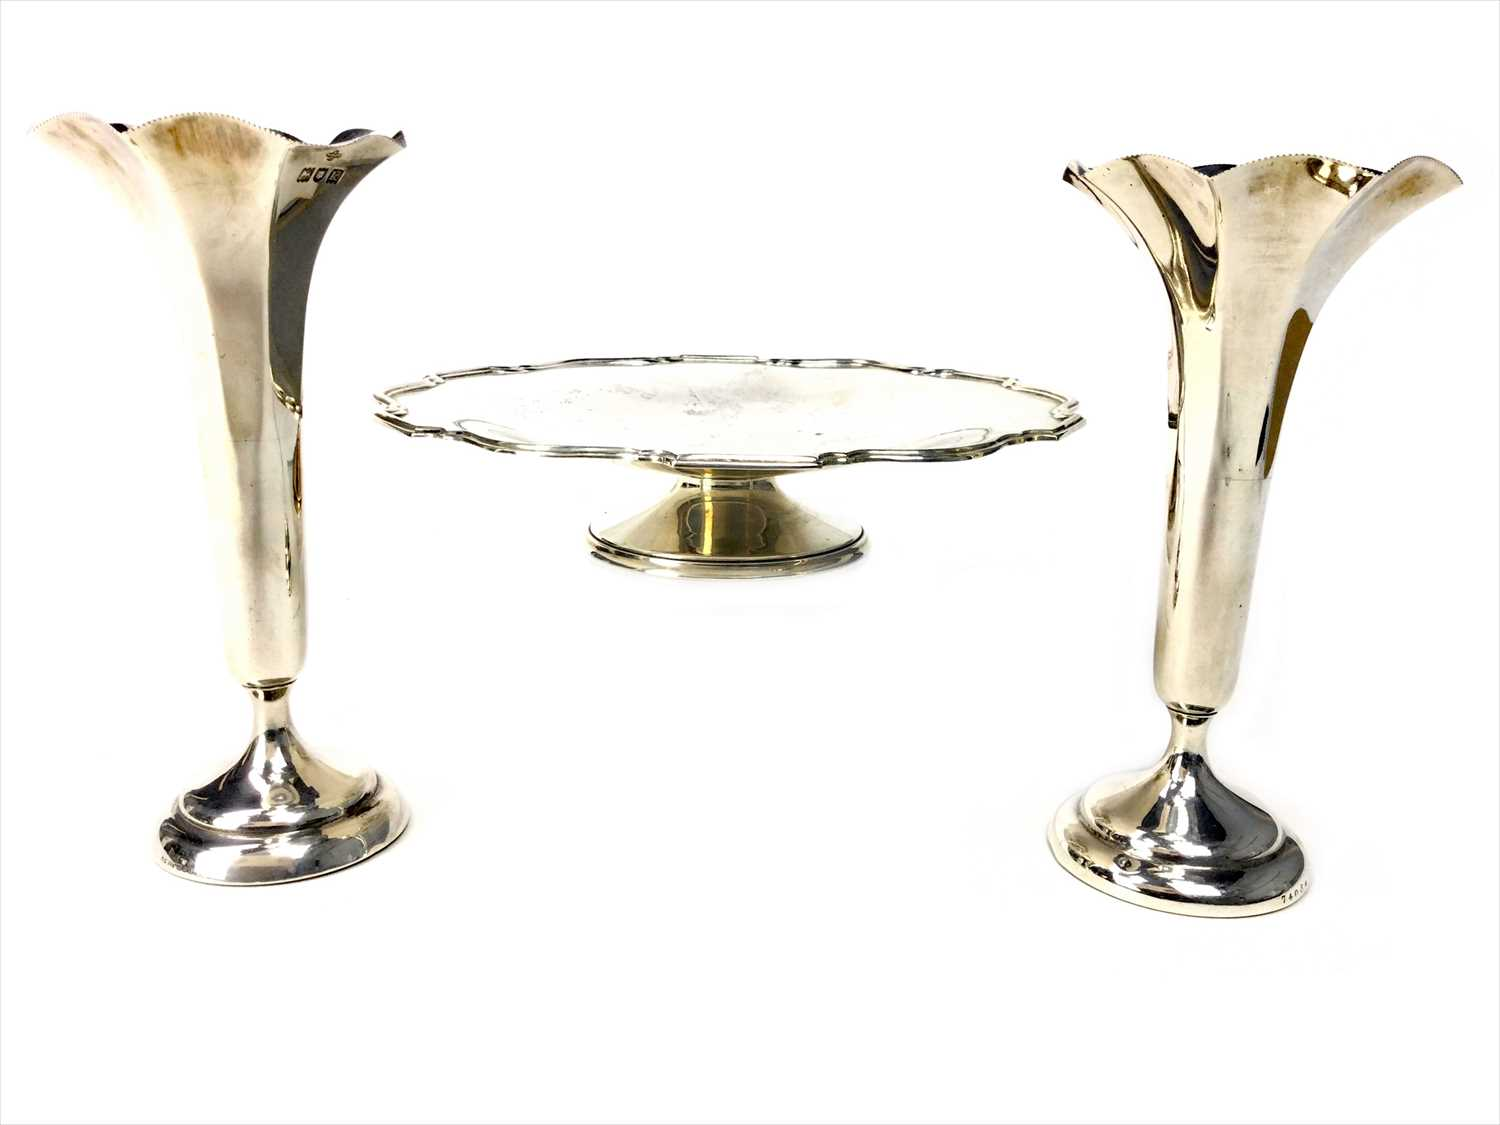 Lot 817-AN EARLY 20TH CENTURY SILVER COMPORT ALONG WITH A PAIR OF SILVER FLOWER TRUMPETS